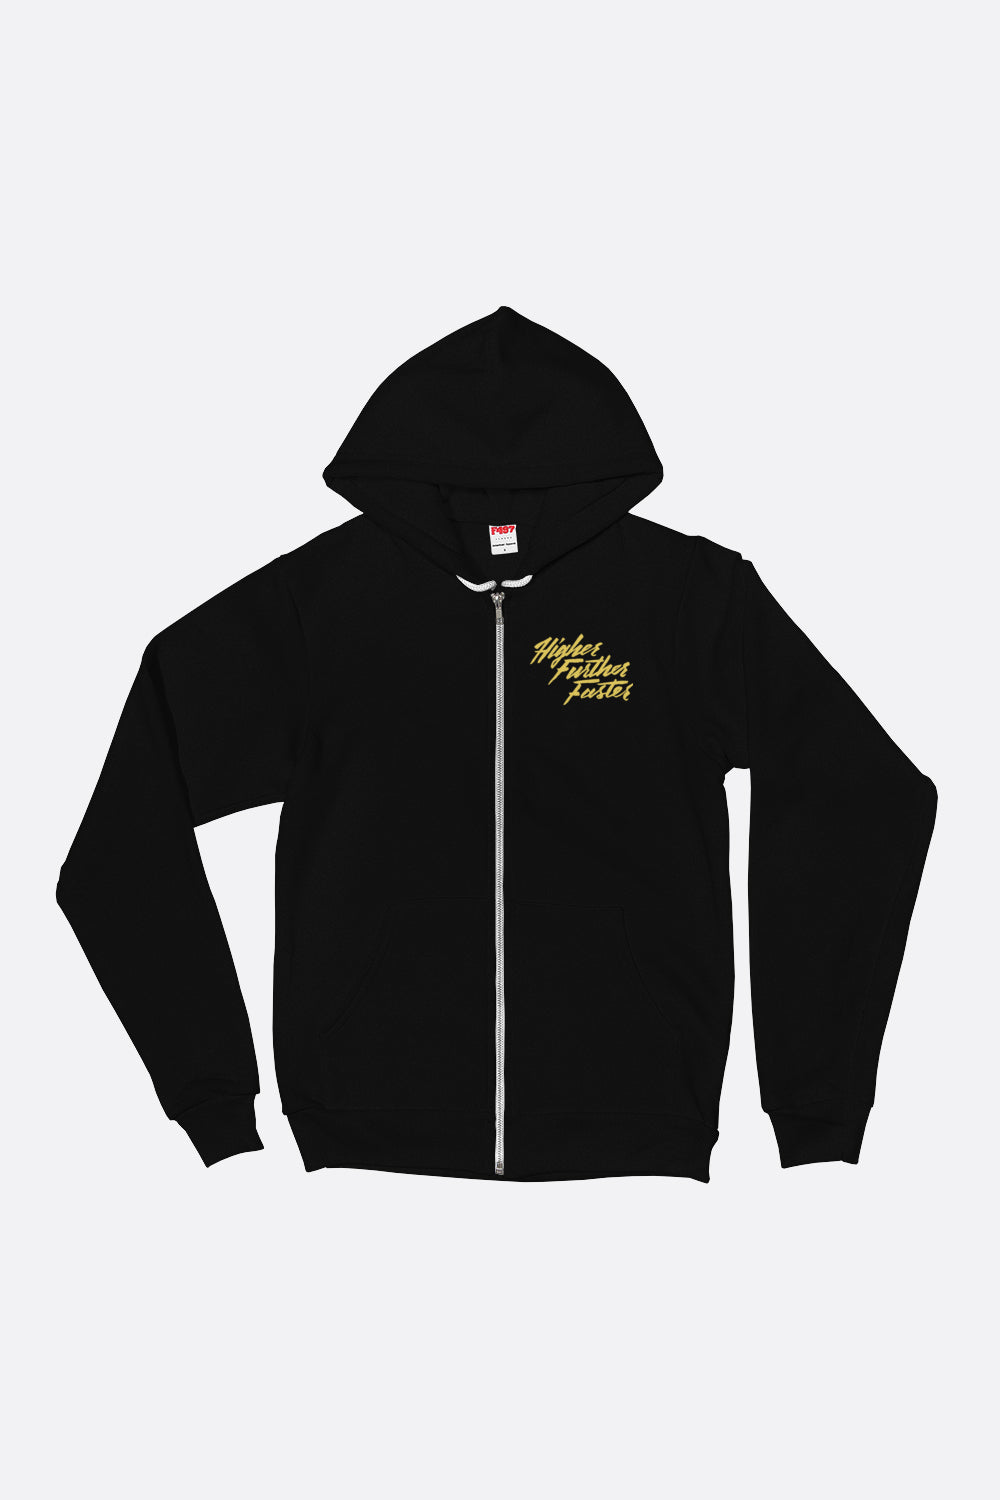 Higher Further Faster Zip Up Hoodie